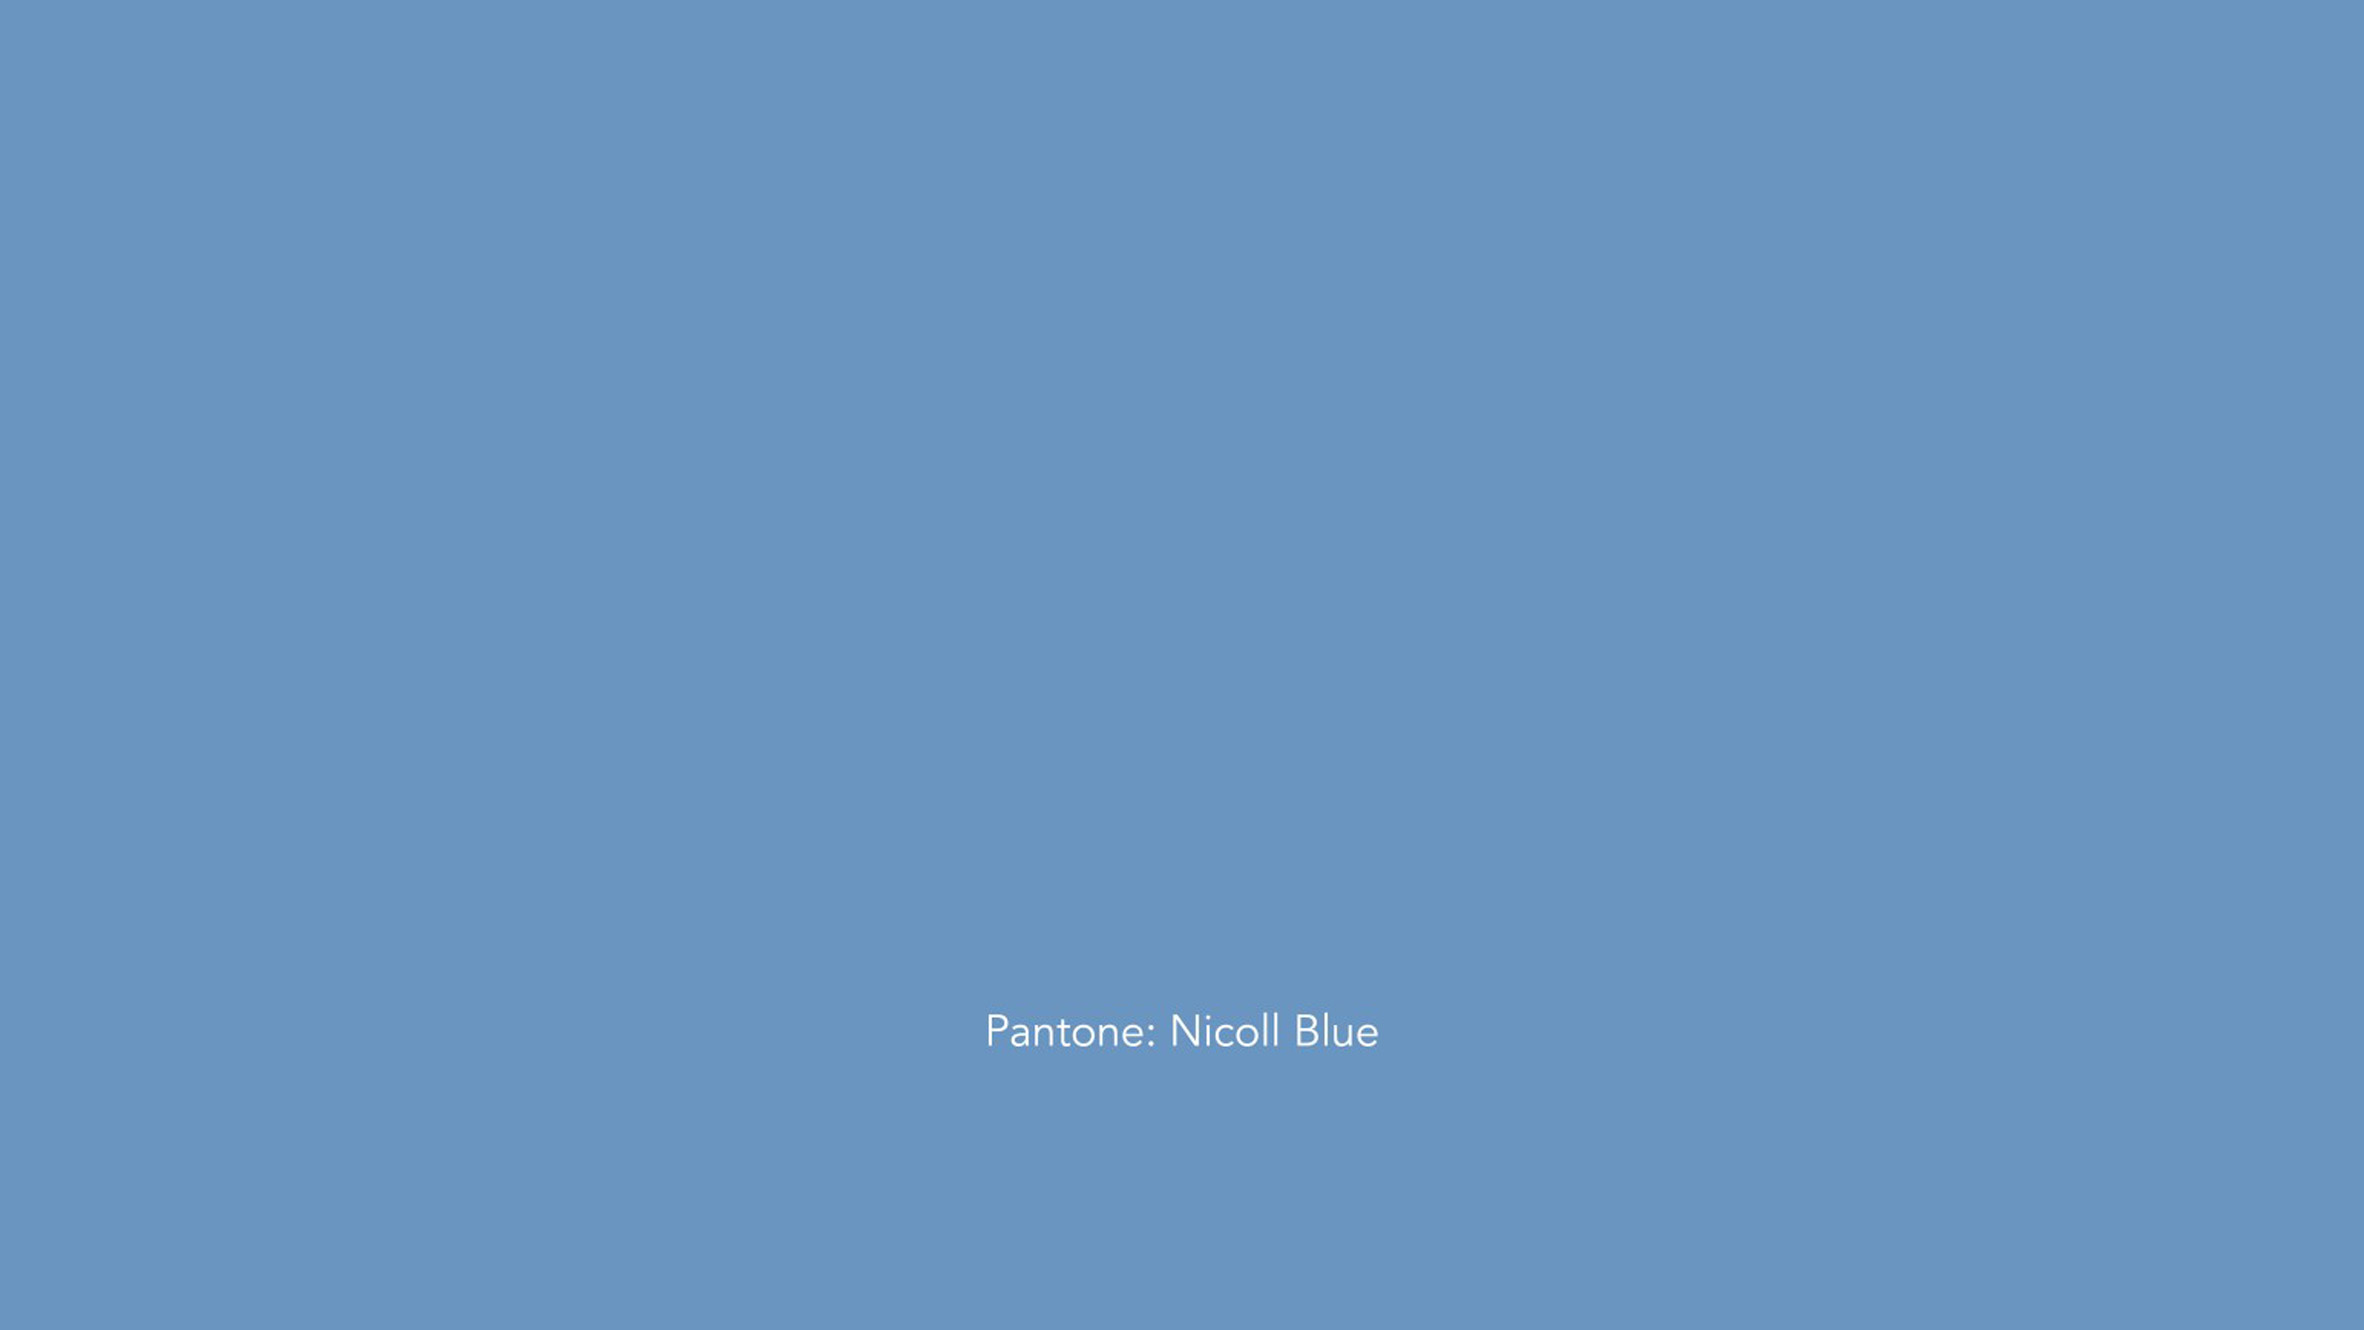 richard-nicoll-pantone-blue-london-fashion-week_dezeen_hero.jpg